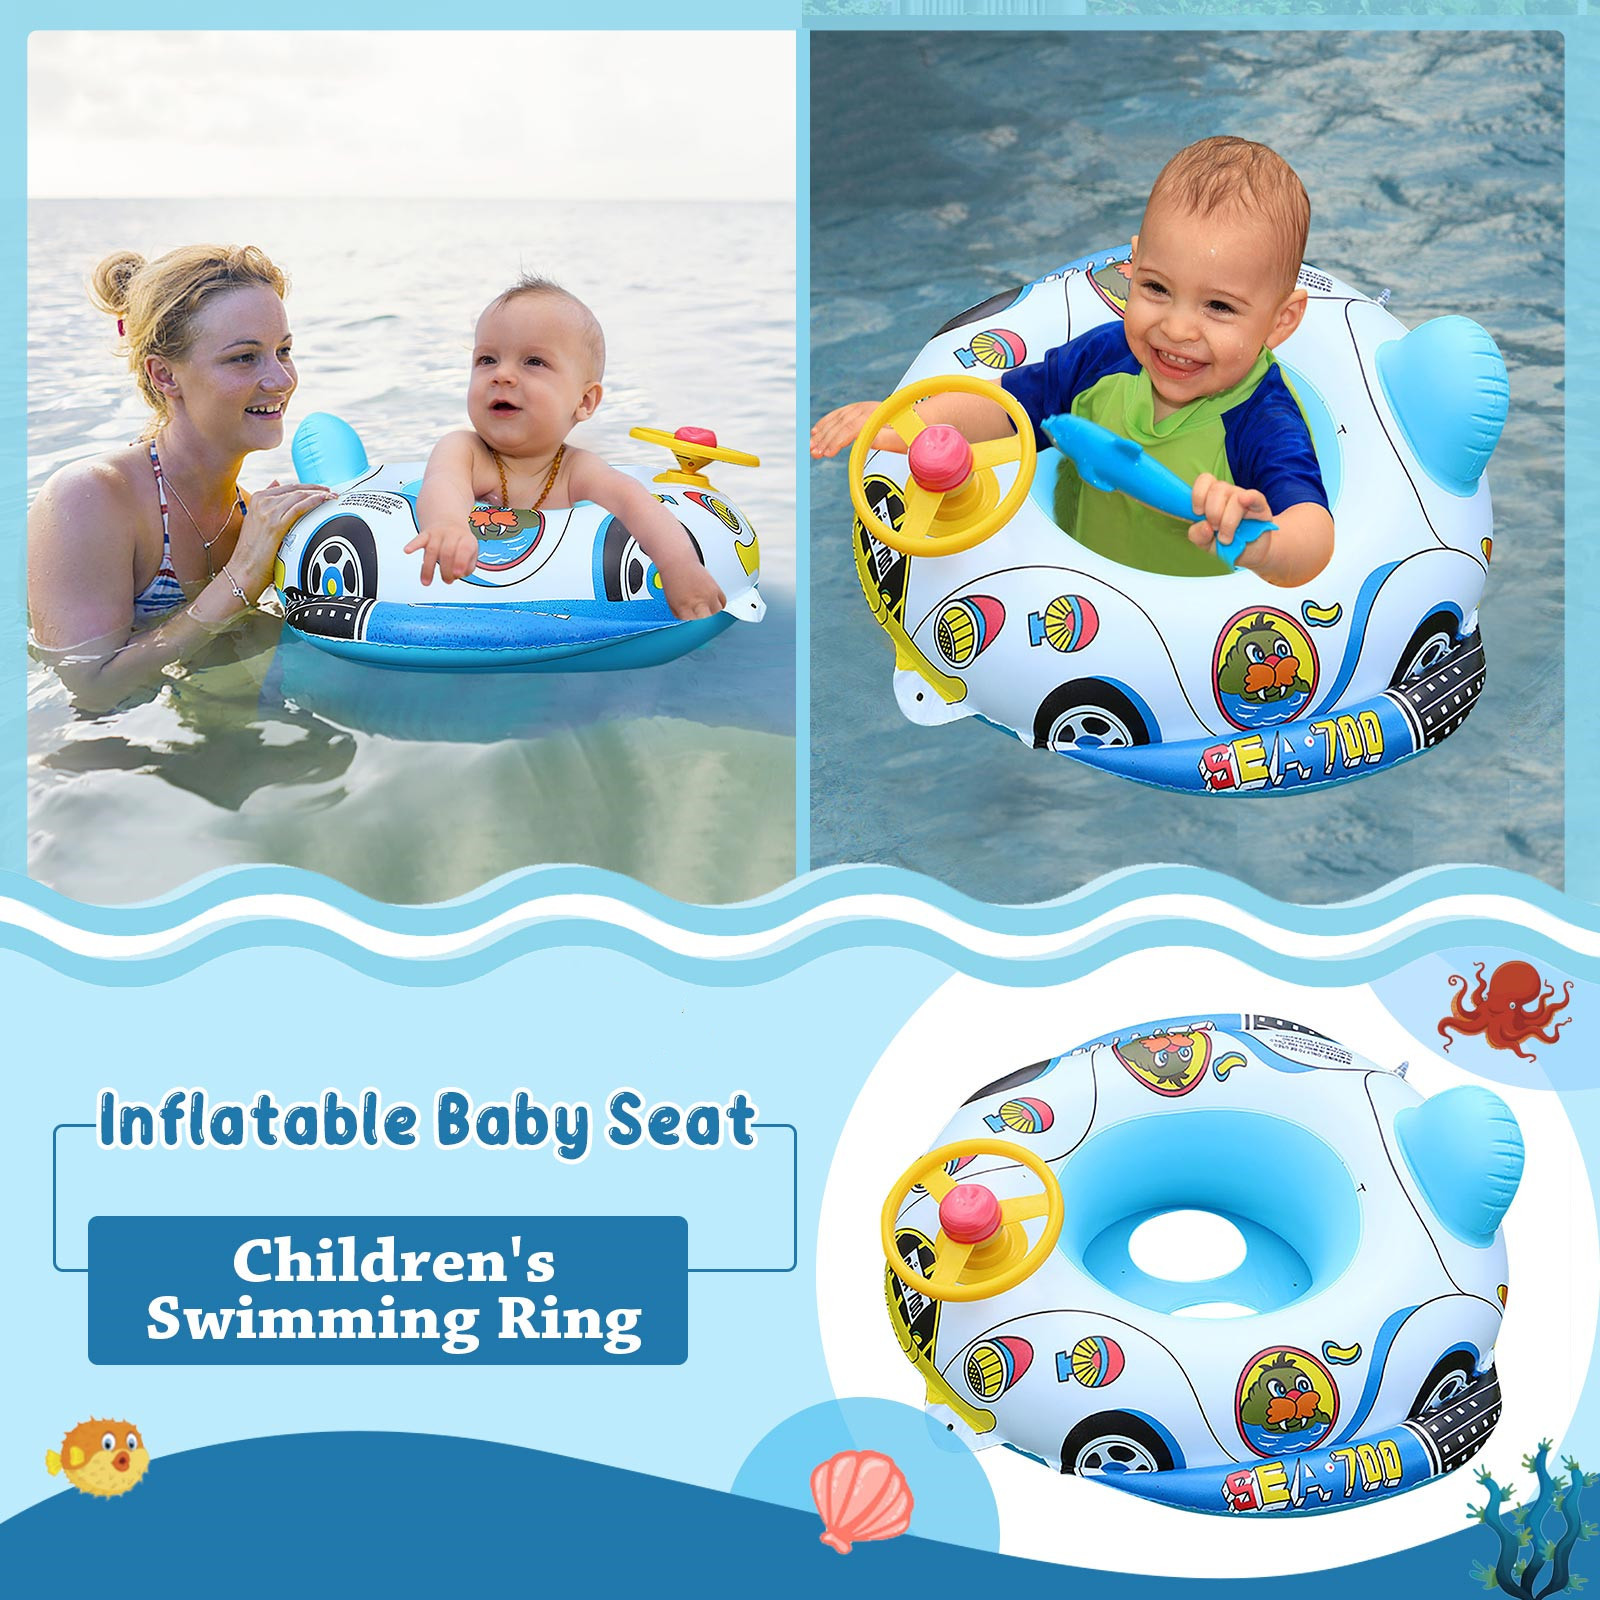 Airship Baby Swimming Ring for Kids PVC Inflatable Swimming Ring Summer Outdoor Swimming Pool Floats Kids Swimming Toys 60x63cm